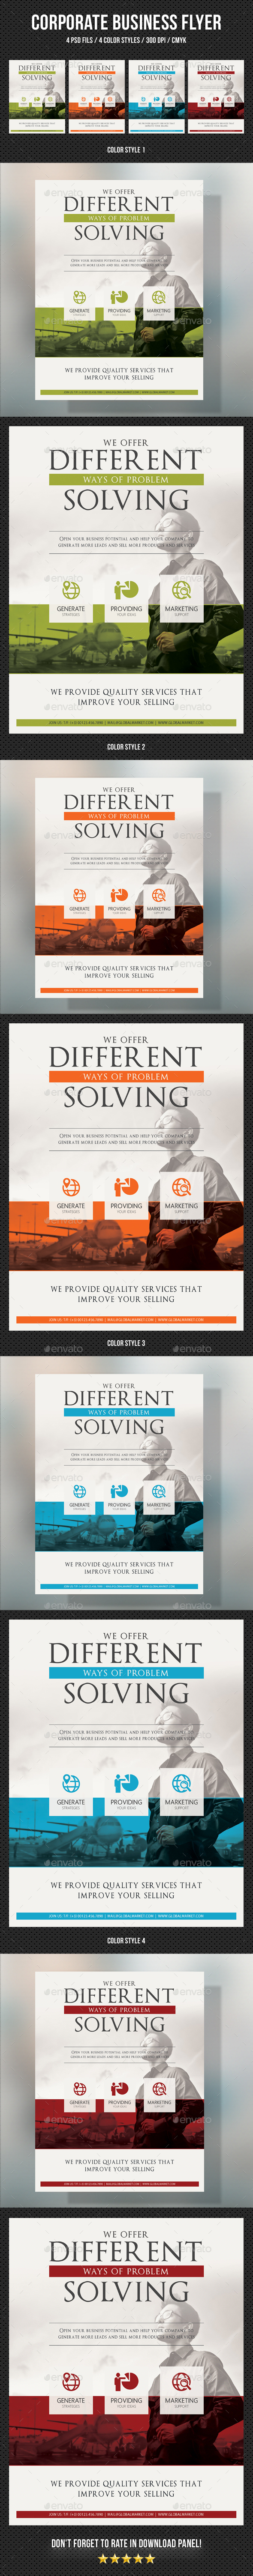 Corporate Business Flyer 11 - Corporate Flyers